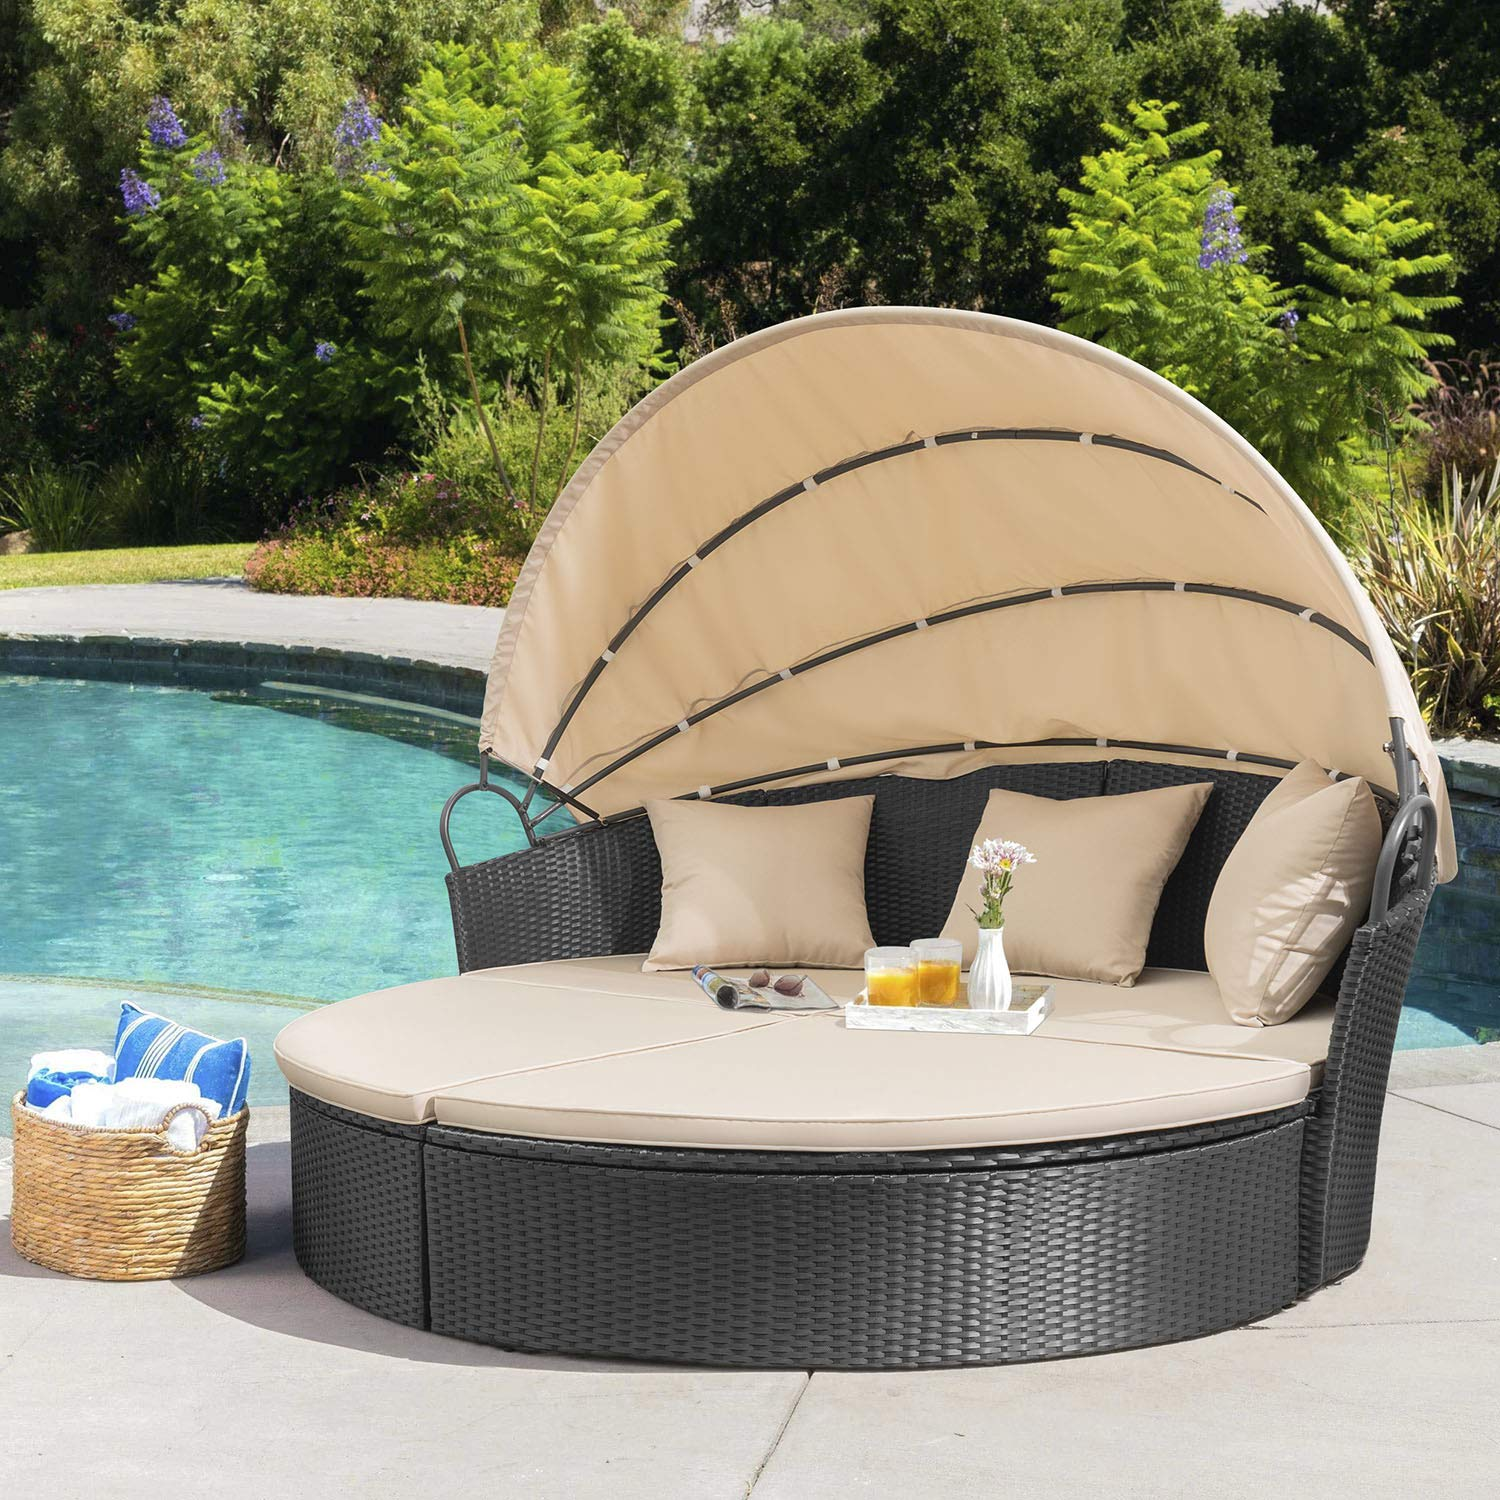 lacoo outdoor patio round daybed with retractable canopy wicker furniture sectional seating with beige washable cushions for patio backyard porch pool